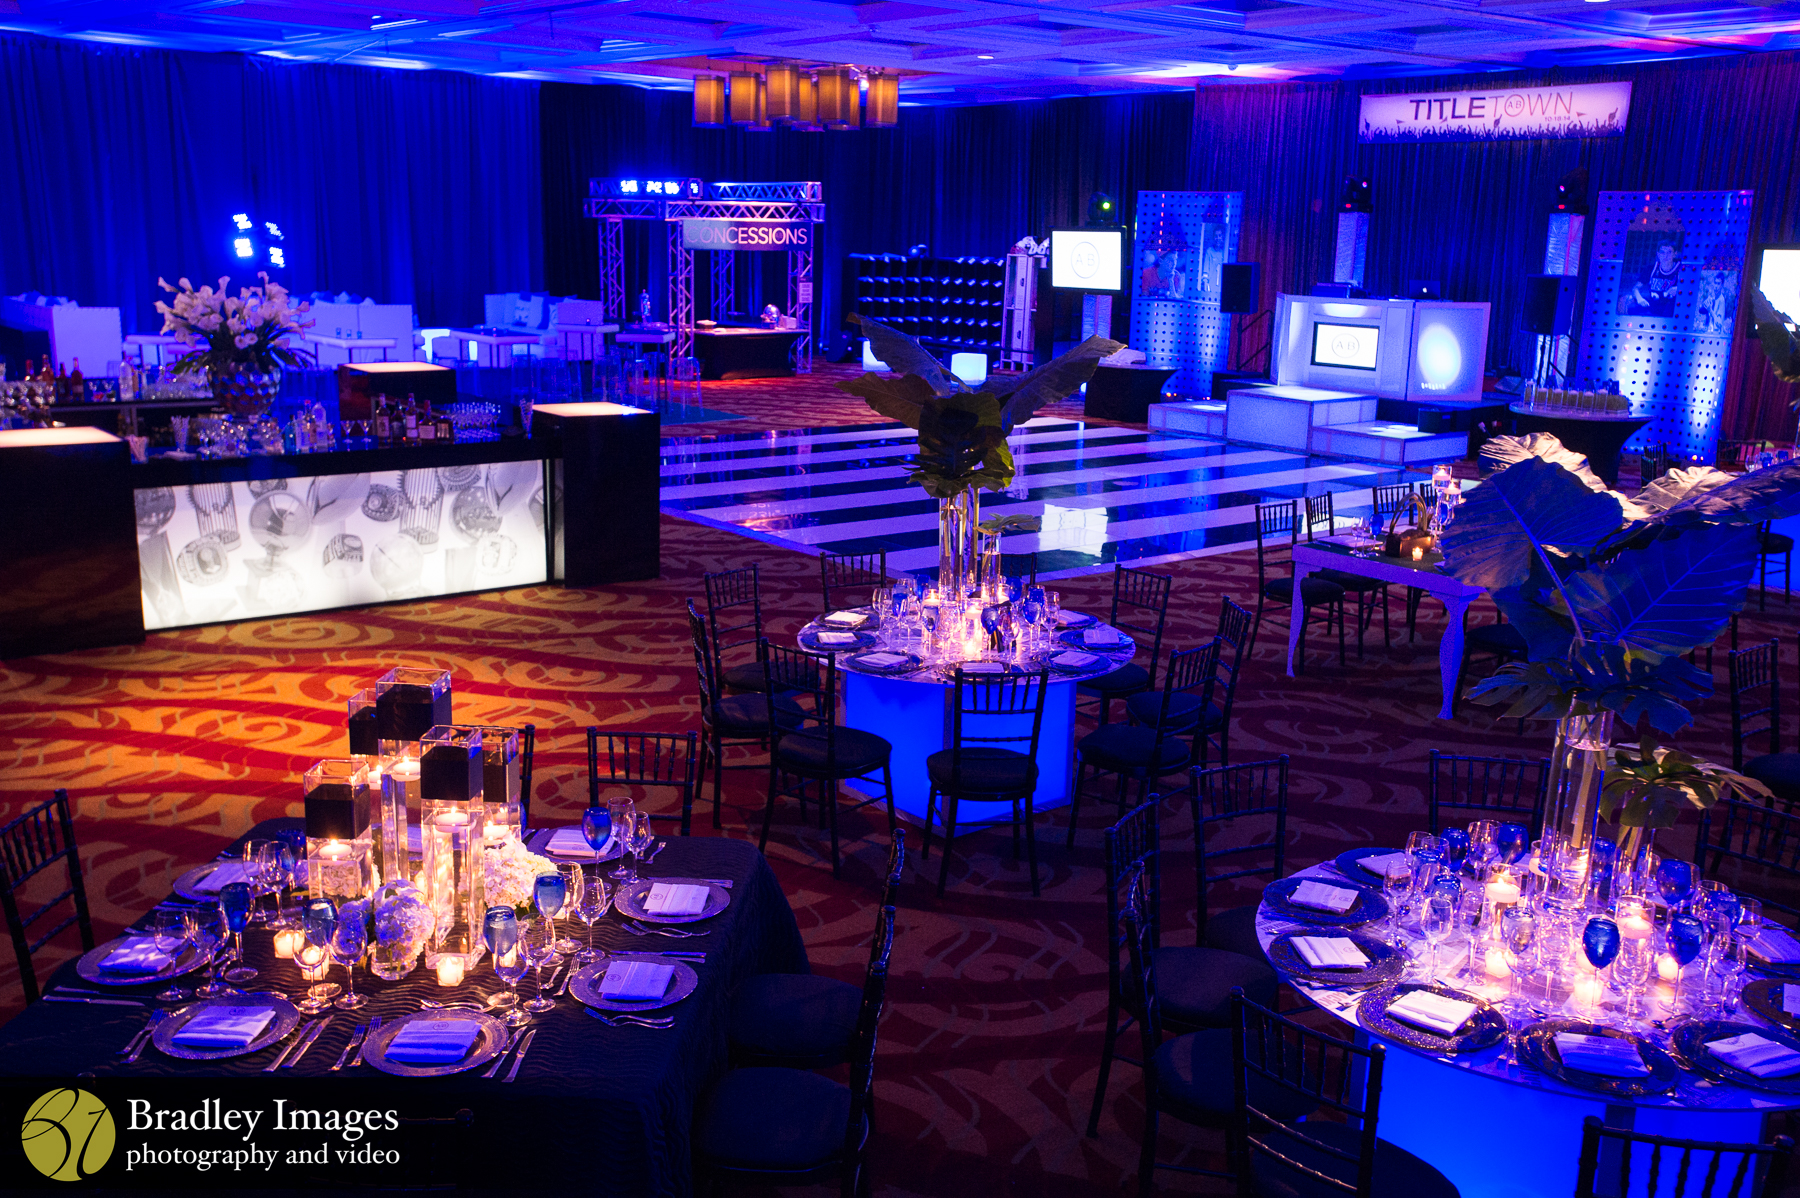 Florida Gators Theme Bat Mitzvah - Bradley Images